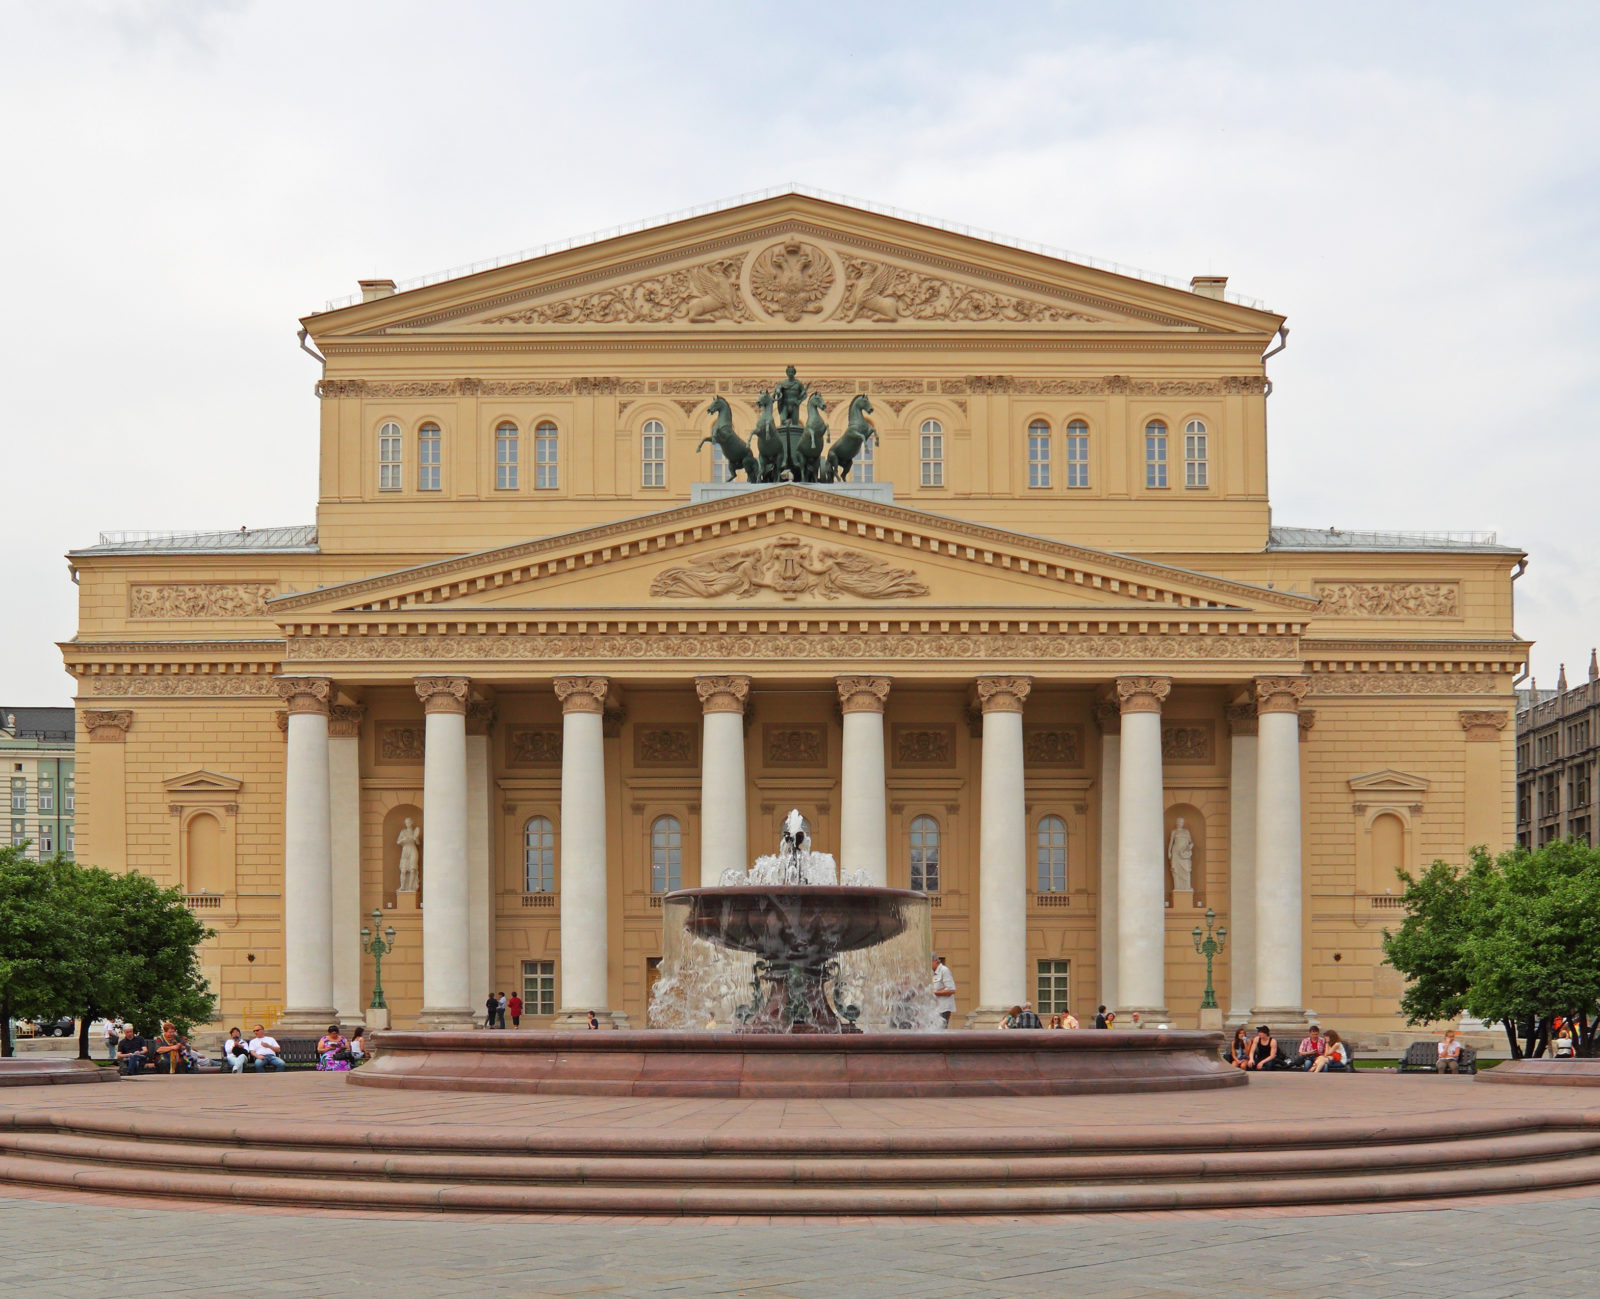 Tours in Moscow, tours in English, tour to Bolshoi, tour to Bolshoi Theater, excursion to Bolshoi Theater, excursions in Moscow, excursions in Moscow in English, Bolshoi Back Stage tour, visit to the Bolshoi Theater, visit to Bolshoi in a small group, English speaking guide, guide in Moscow, tours in English, theatre tour, tour to the theatre, unusual tours, popular tours, traditional tours, theater tours, theatre focused tours, excursions to the theatre, back stage tours, backstage excursions, excursions to the backstage, Bolshoi tours, Bolshoi visits, tickets to the theatre, tickets to the Bolshoi theatre, tickets to the Bolshoi